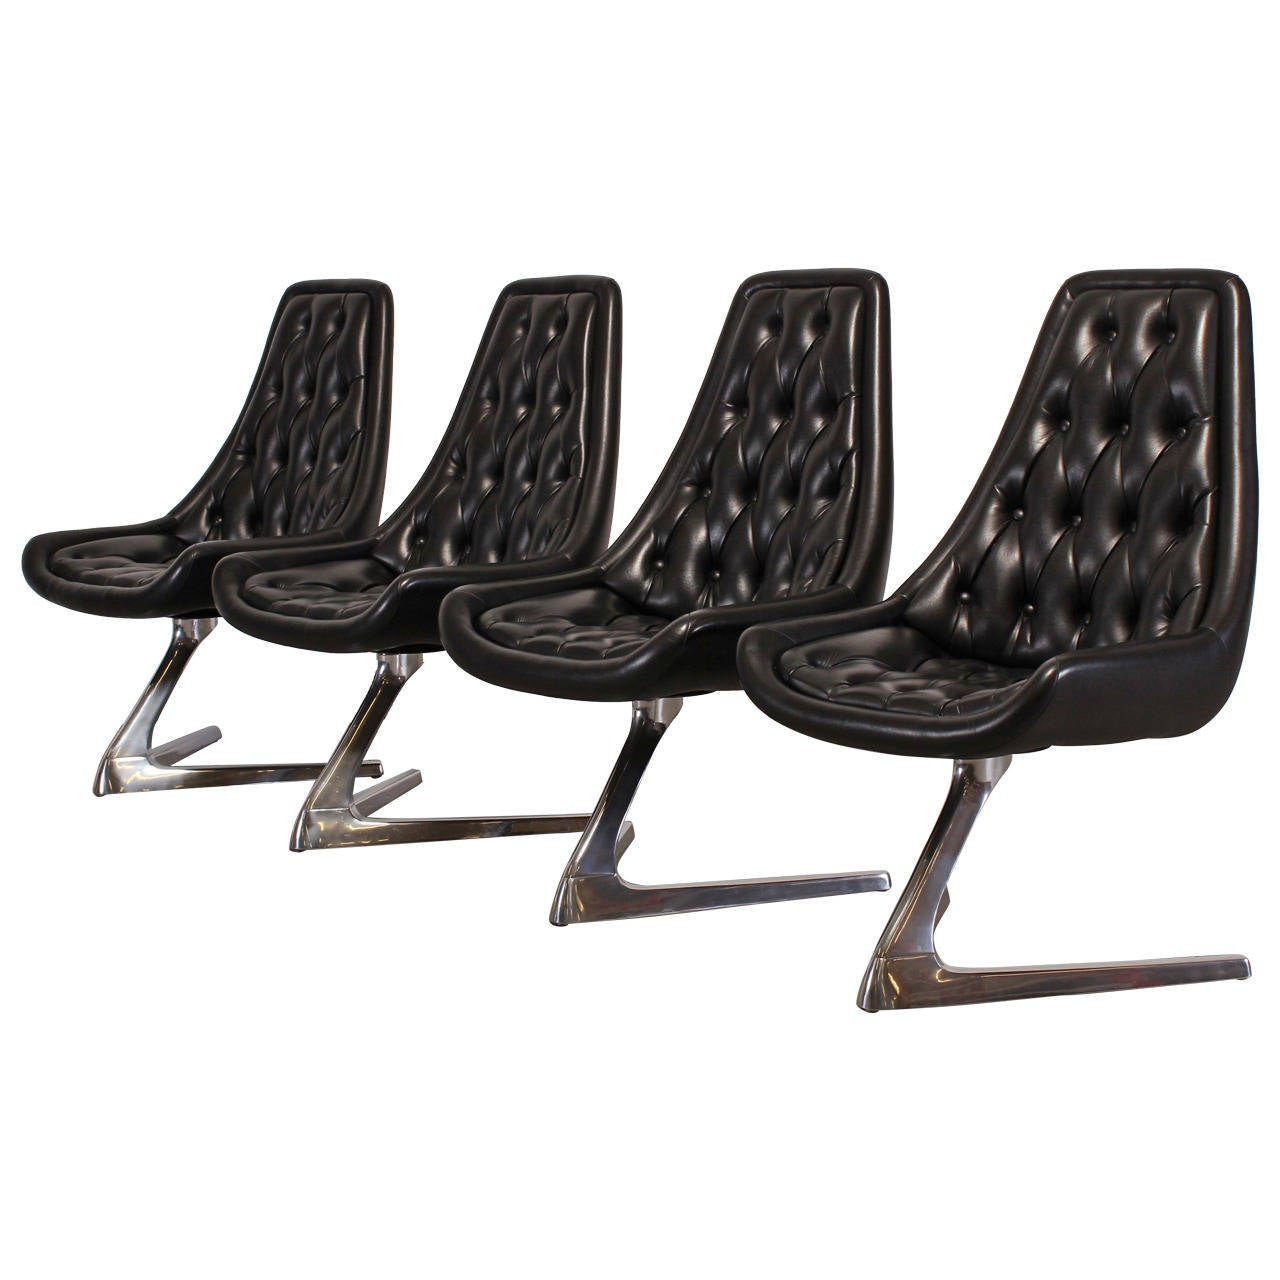 Set Of Four Quot Sculpta Quot Star Trek Chairs By Chromcraft At